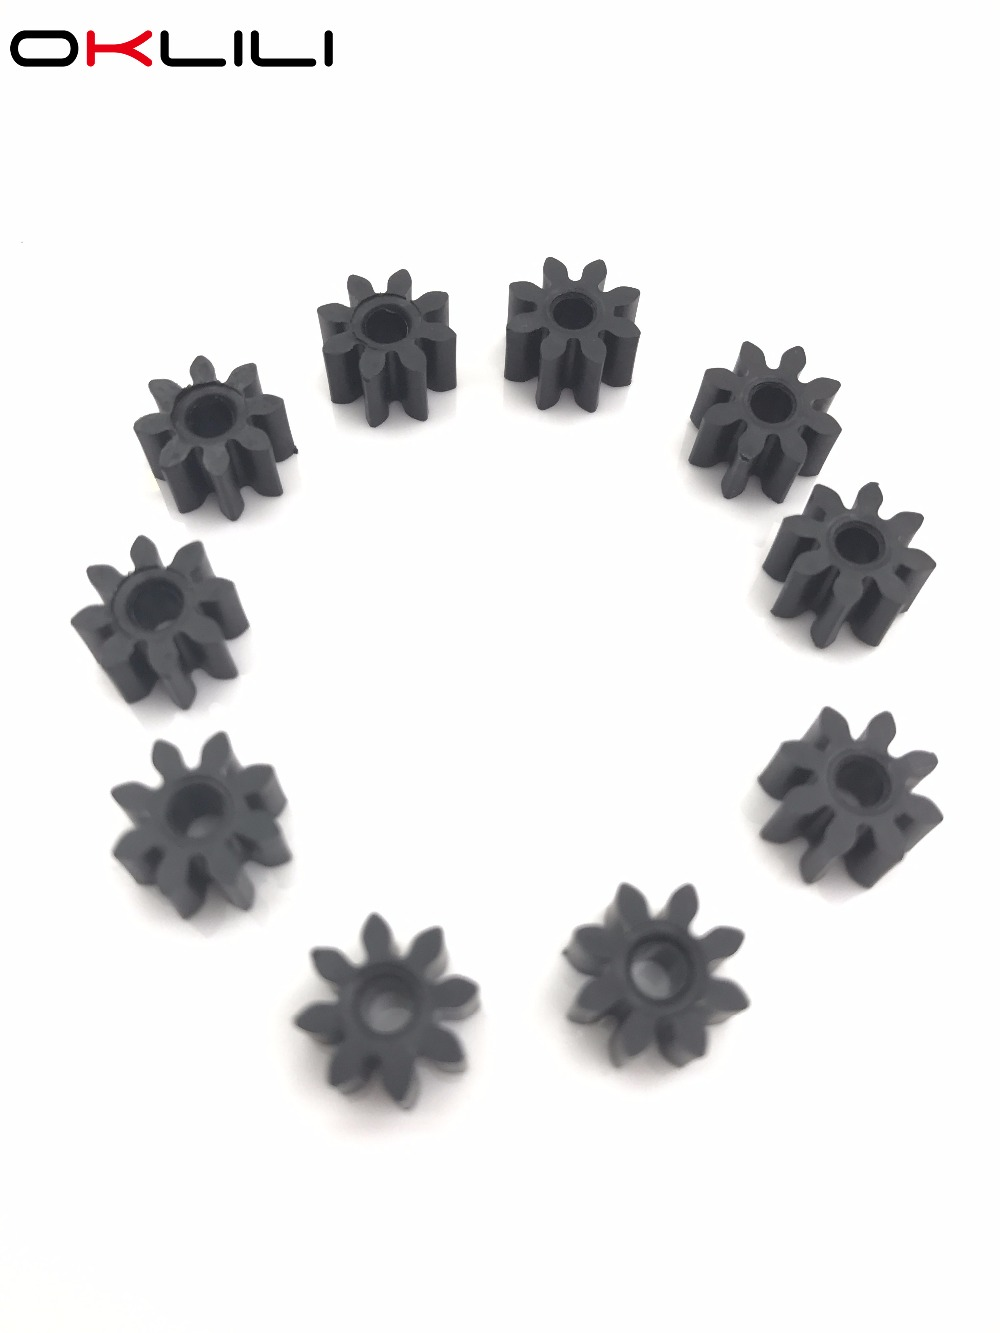 10X Feed Feeding Delivery Roller Gear 8T for HP 920 6000 6500 6500A 7000 7500 7500A B010 B010A B010b B109 B109a B109c B109q B110 cn643a cd868 30001 remanufactured printhead print head for hp 920 officejet 6000 6500 6500a 7000 7500a photosmart b010a b010b